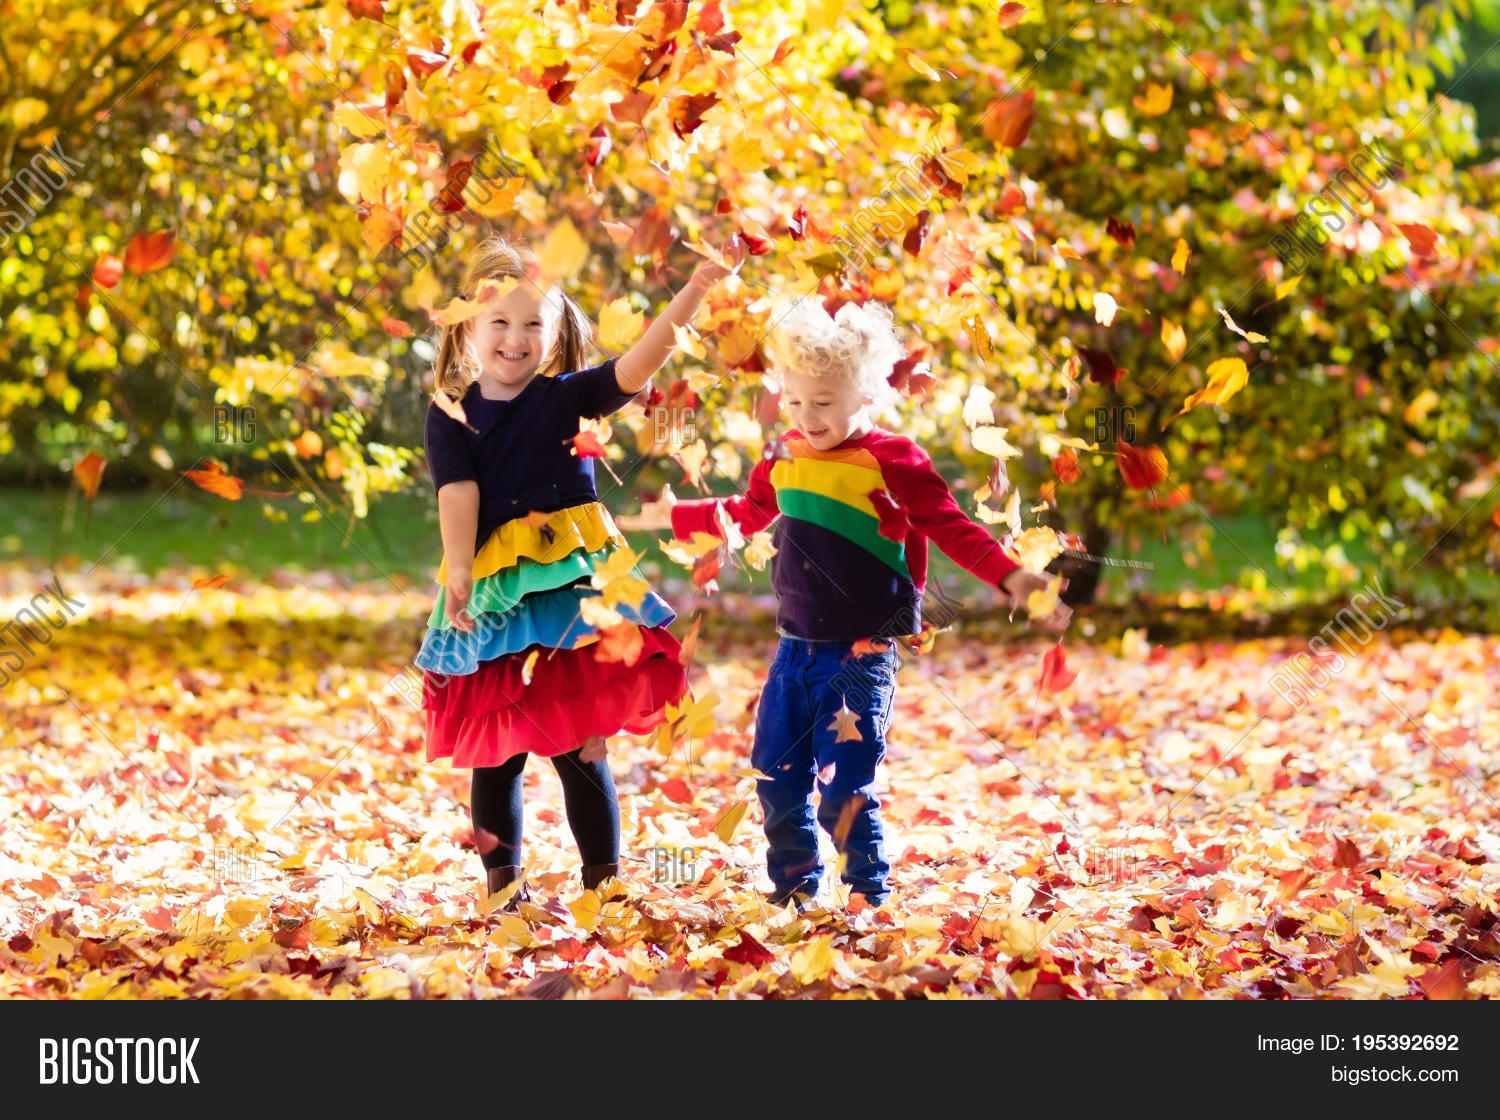 Kids Play Autumn Park Image Amp Photo Free Trial